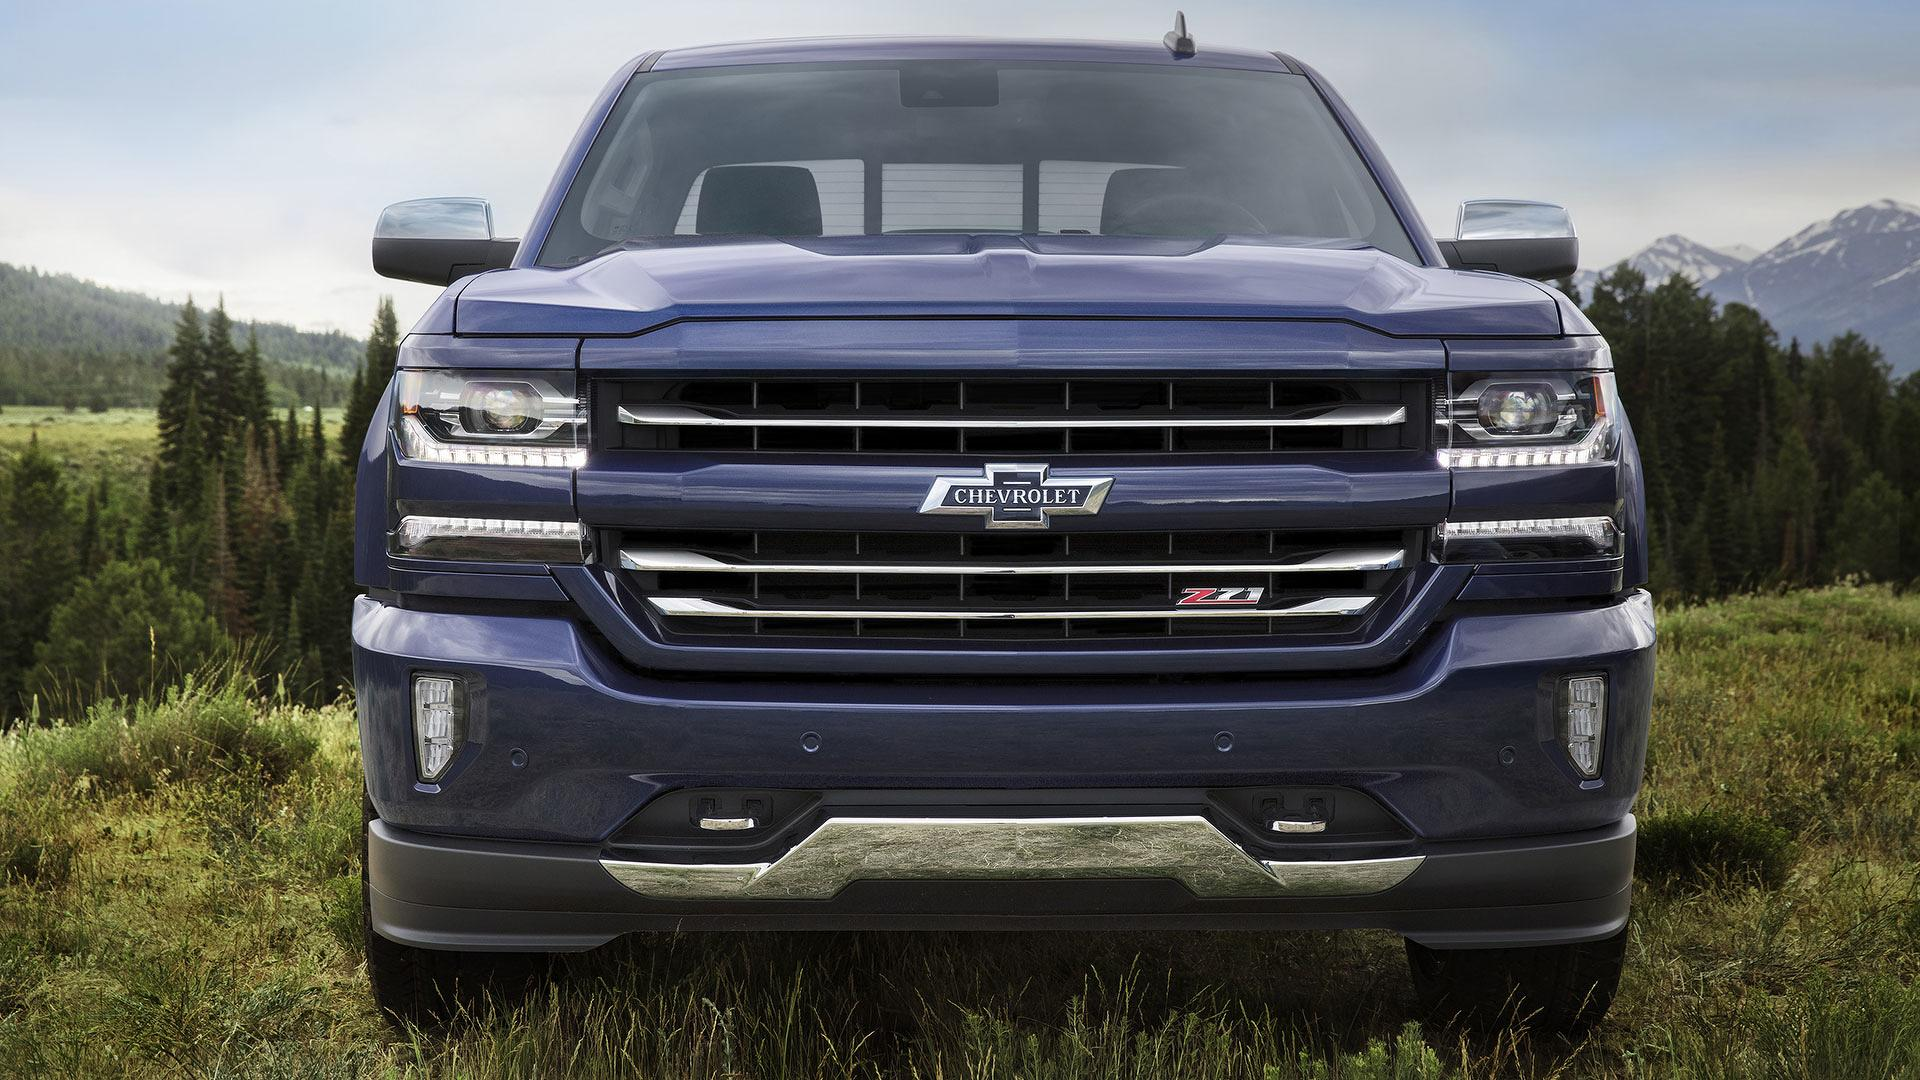 "2018 Centennial Edition Silverado - The Centennial Edition includes all of the features available on the LTZ Z71 crew cab and adds the Centennial Blue exterior paint color, front and rear heritage bowties, 100 year door badges, spray-in bedliner with heritage bowtie emblems and accessory floor liners with heritage bowtie emblems. The Centennial Edition also adds 22"" painted wheels with chrome inserts, 22"" all-terrain tires, chrome tow hooks and a chrome bowtie on the steering wheel."